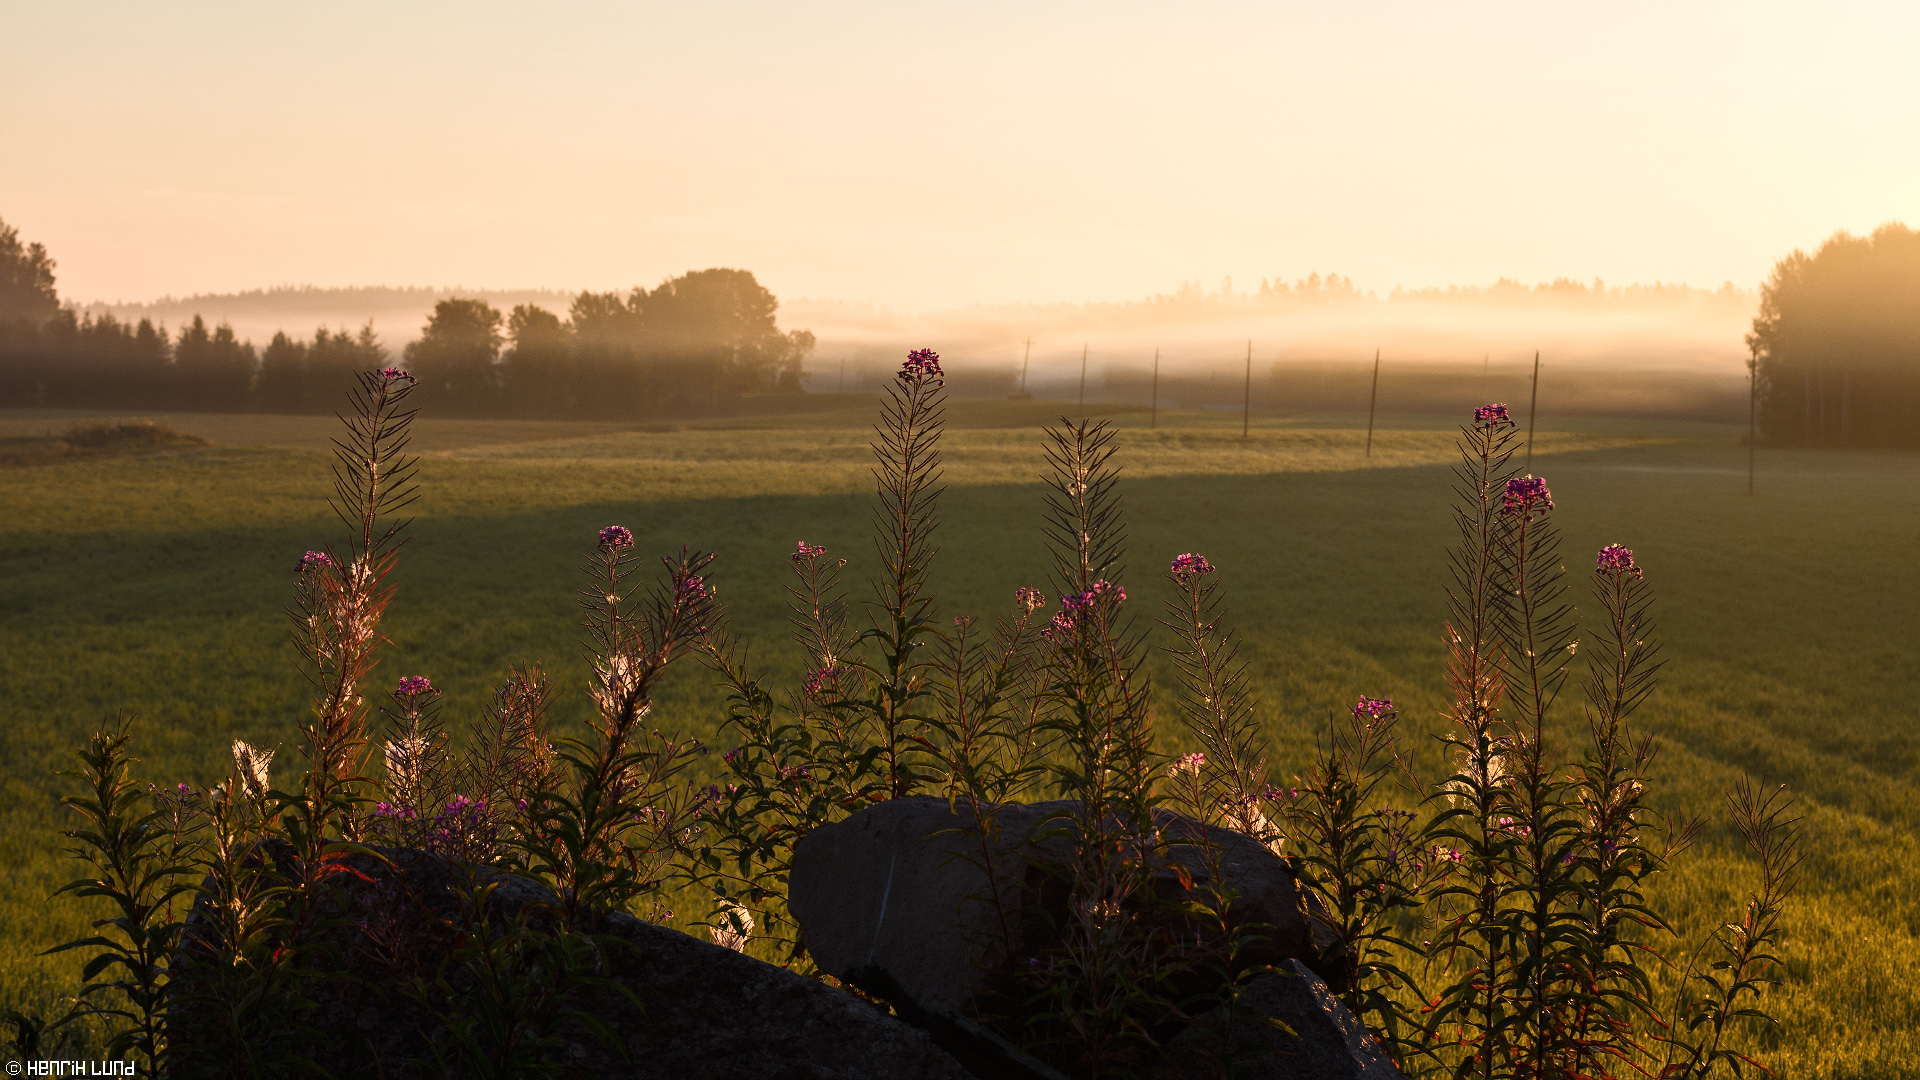 Fireweed backlit in the autumn misty morning. Porlammi, Lapinjärvi, Finland, August, 2015.